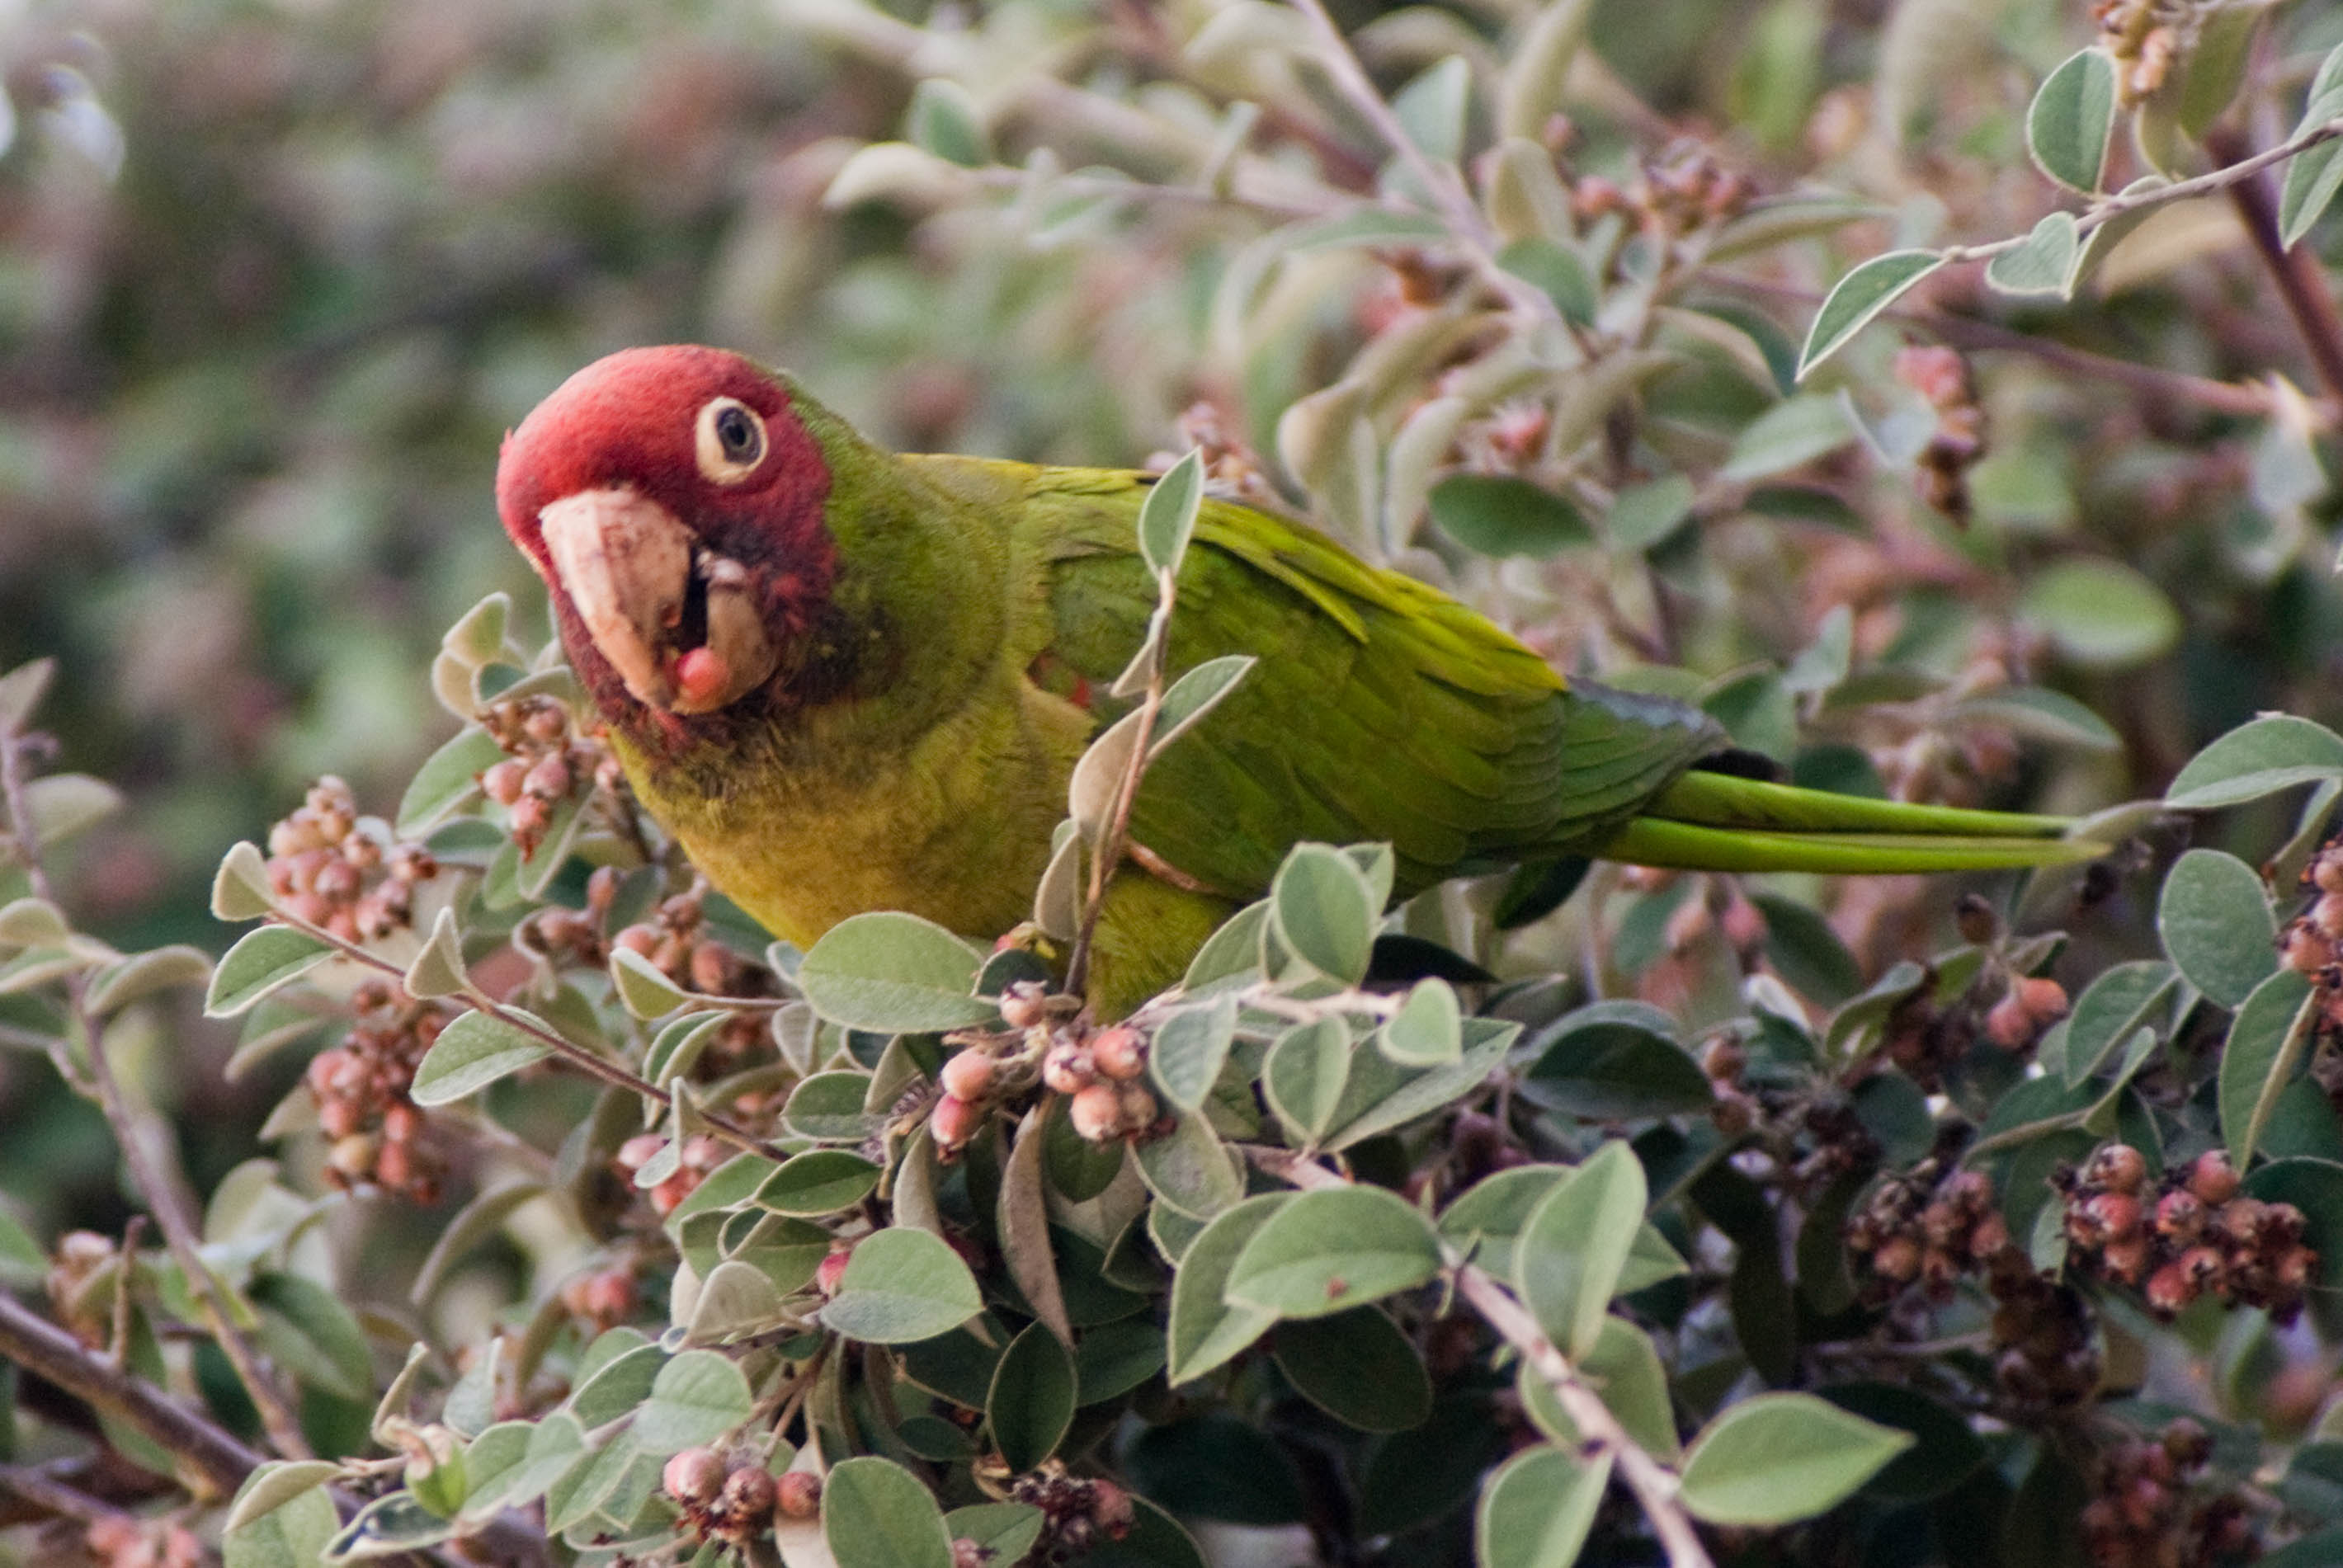 08744 Parrot with berry in mouth